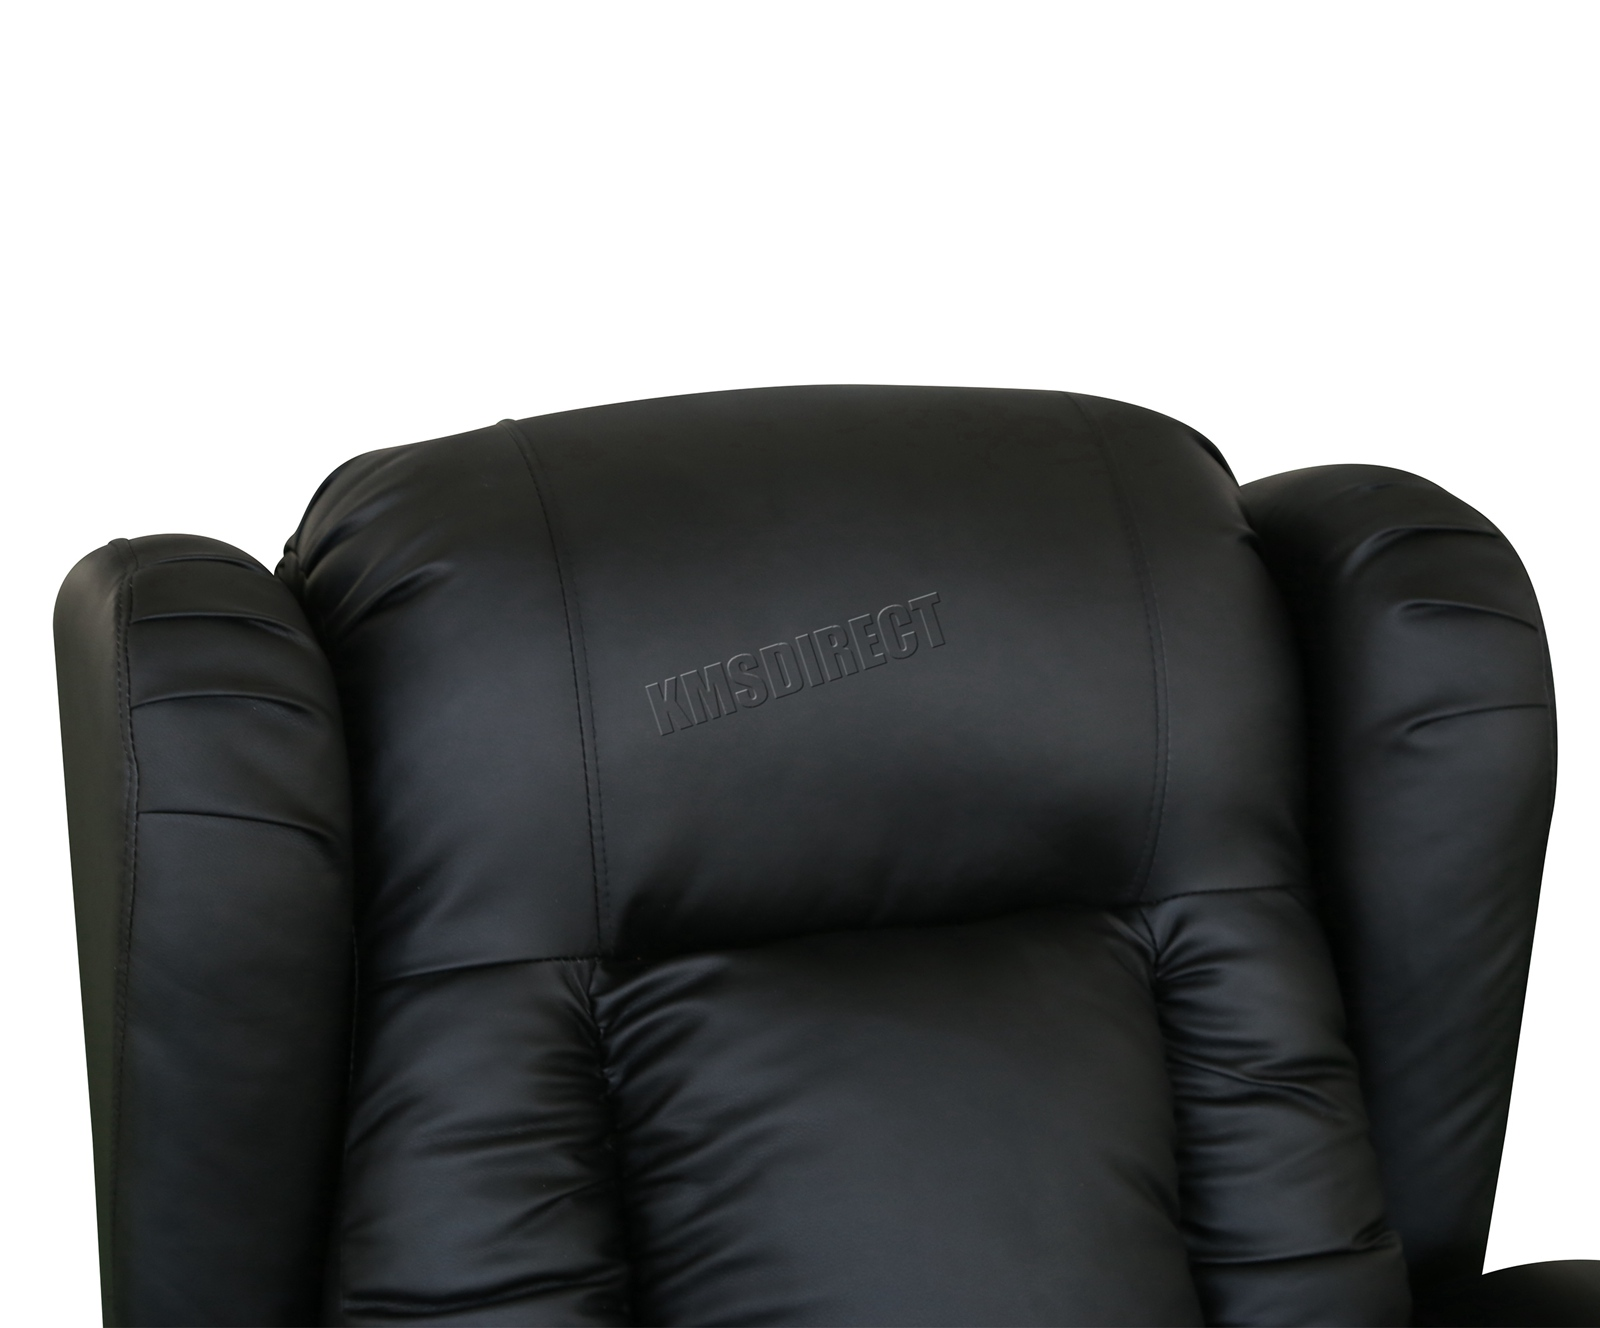 WESTWOOD-Leather-Recliner-Armchair-Swivel-Heated-chair-Massage-Gaming-Chair thumbnail 18